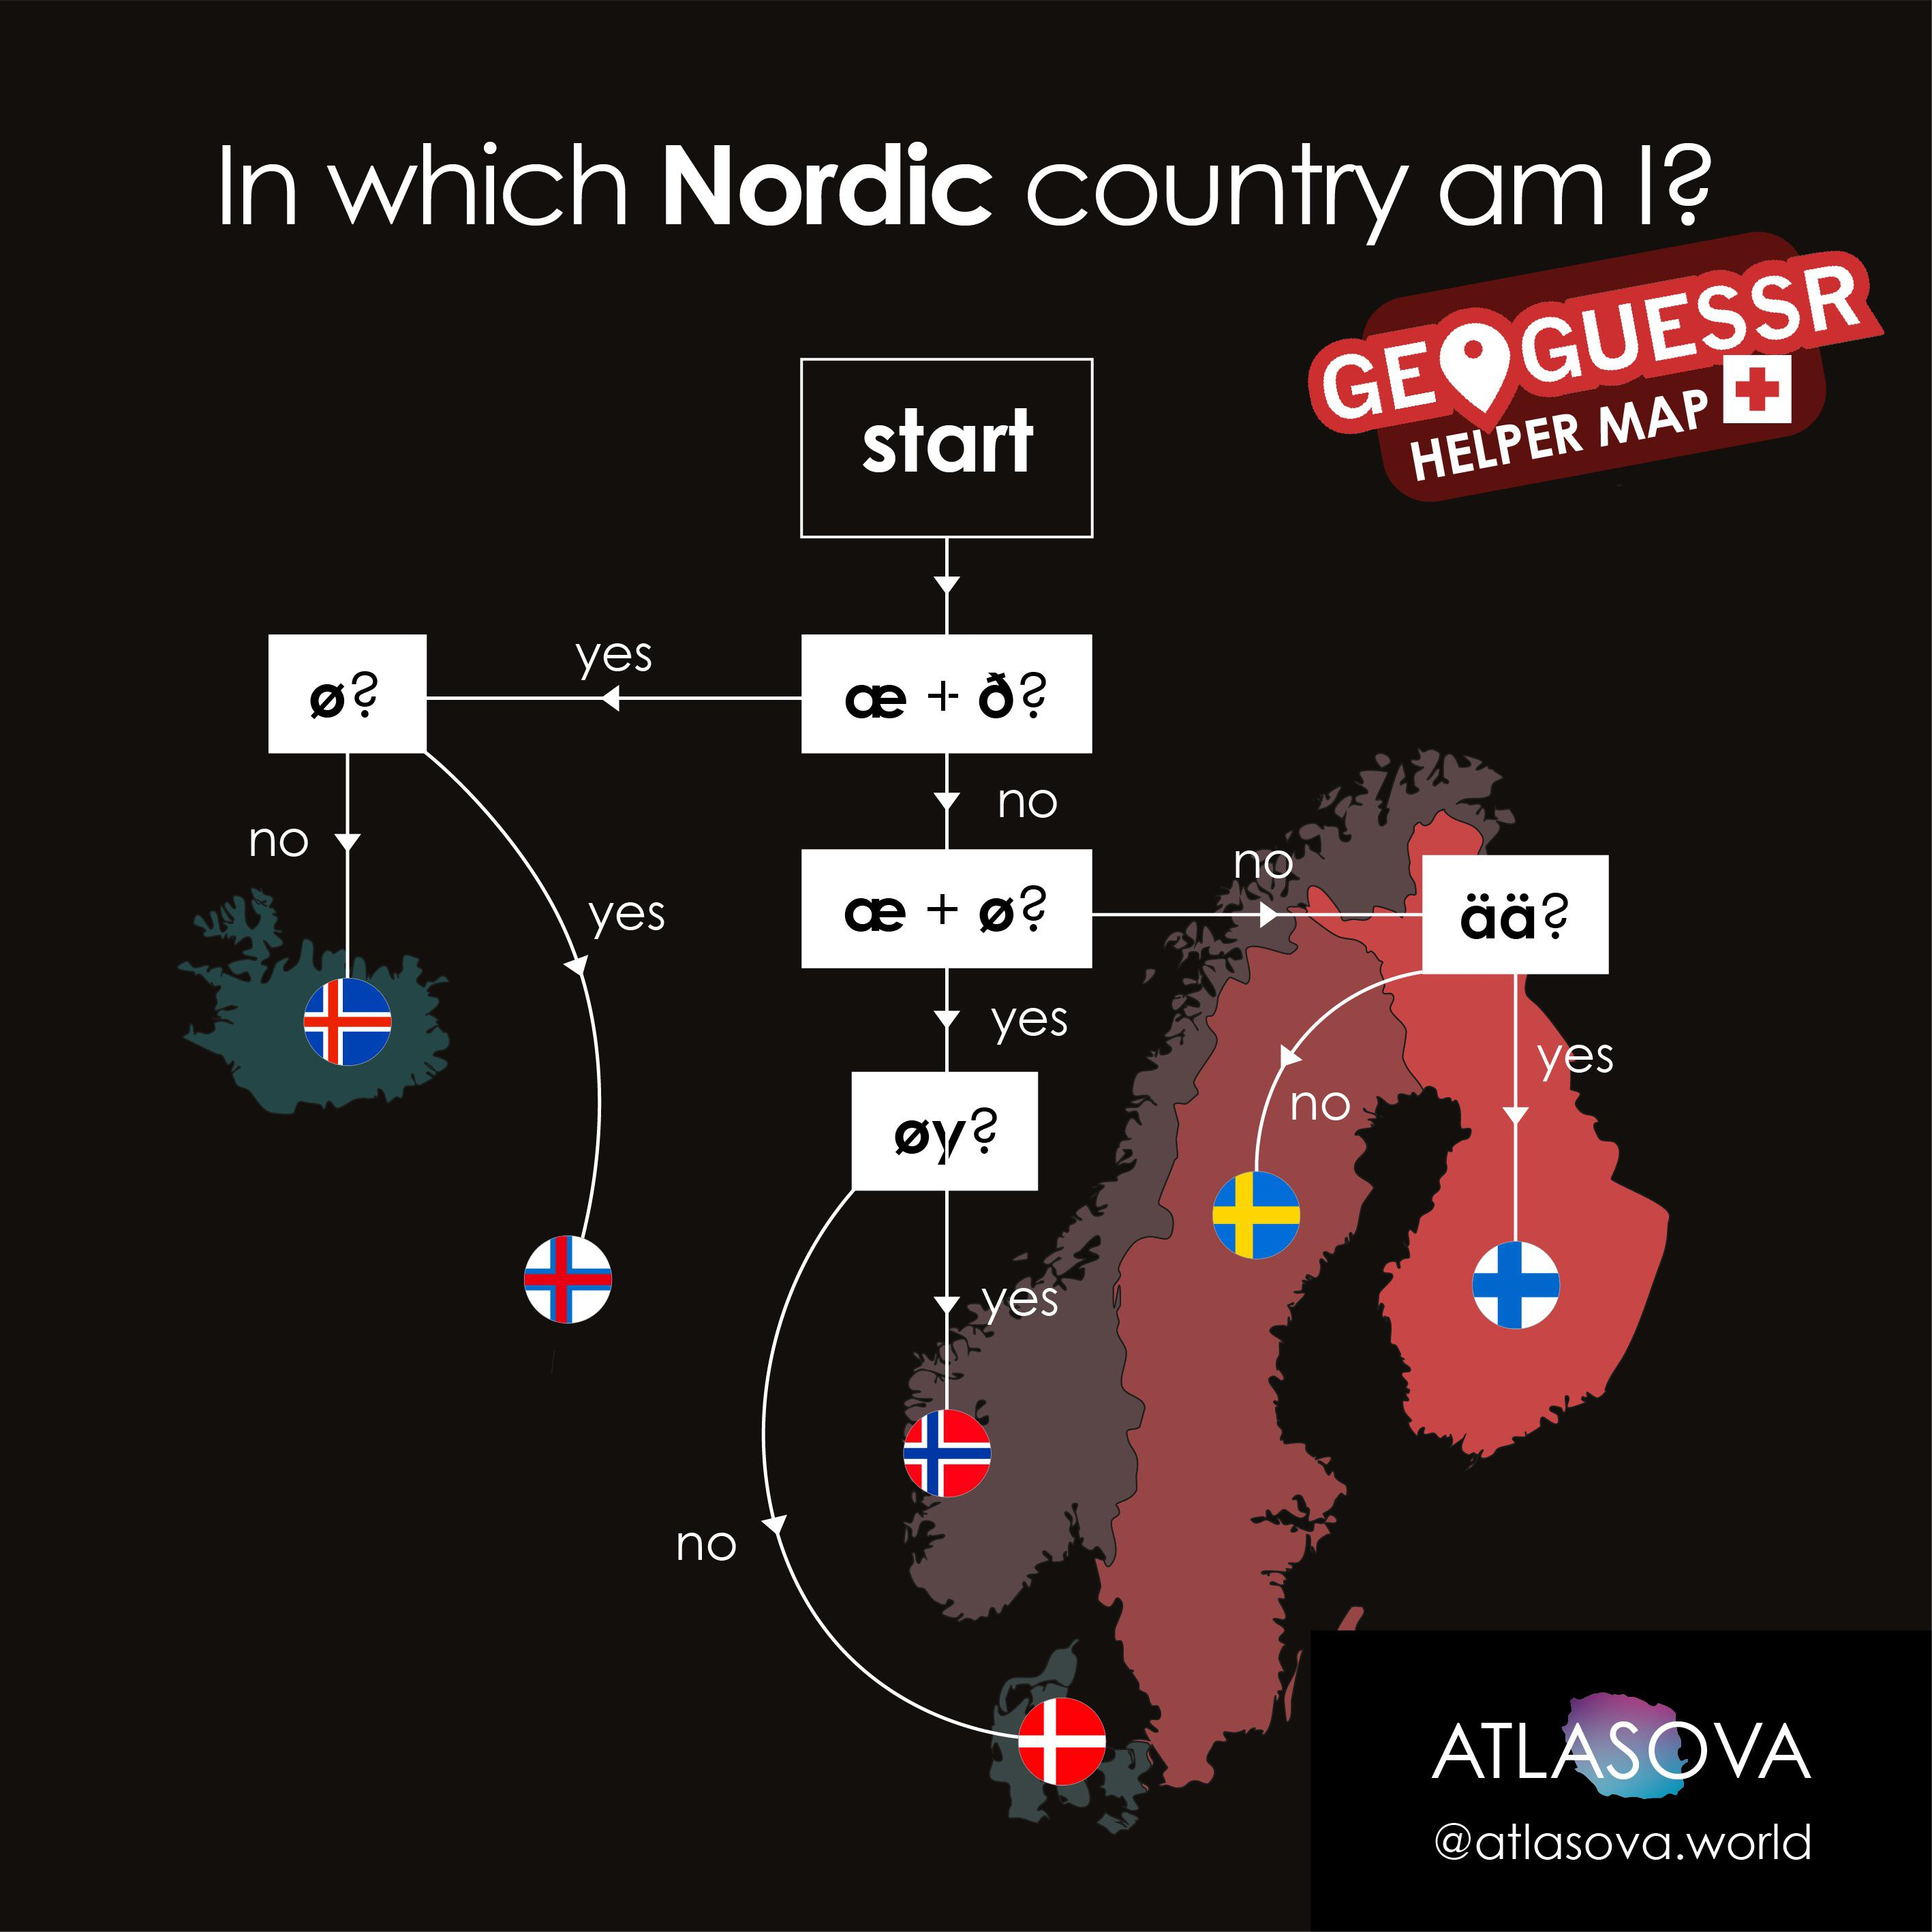 A useful tool to figure out in which Nordic country you are